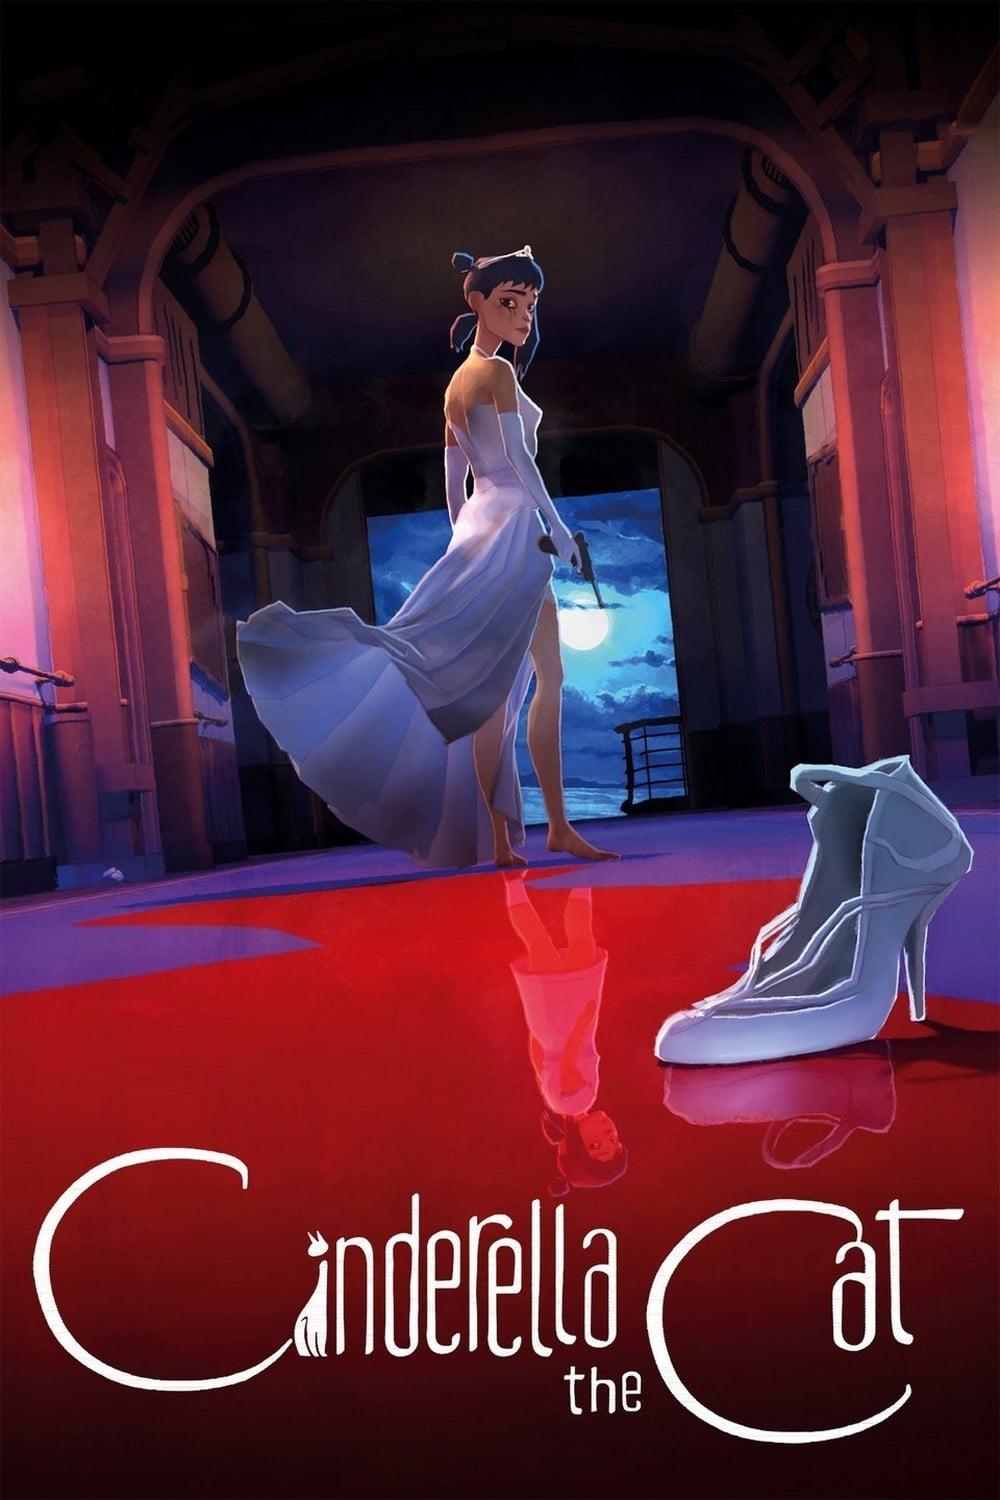 Cinderella the Cat